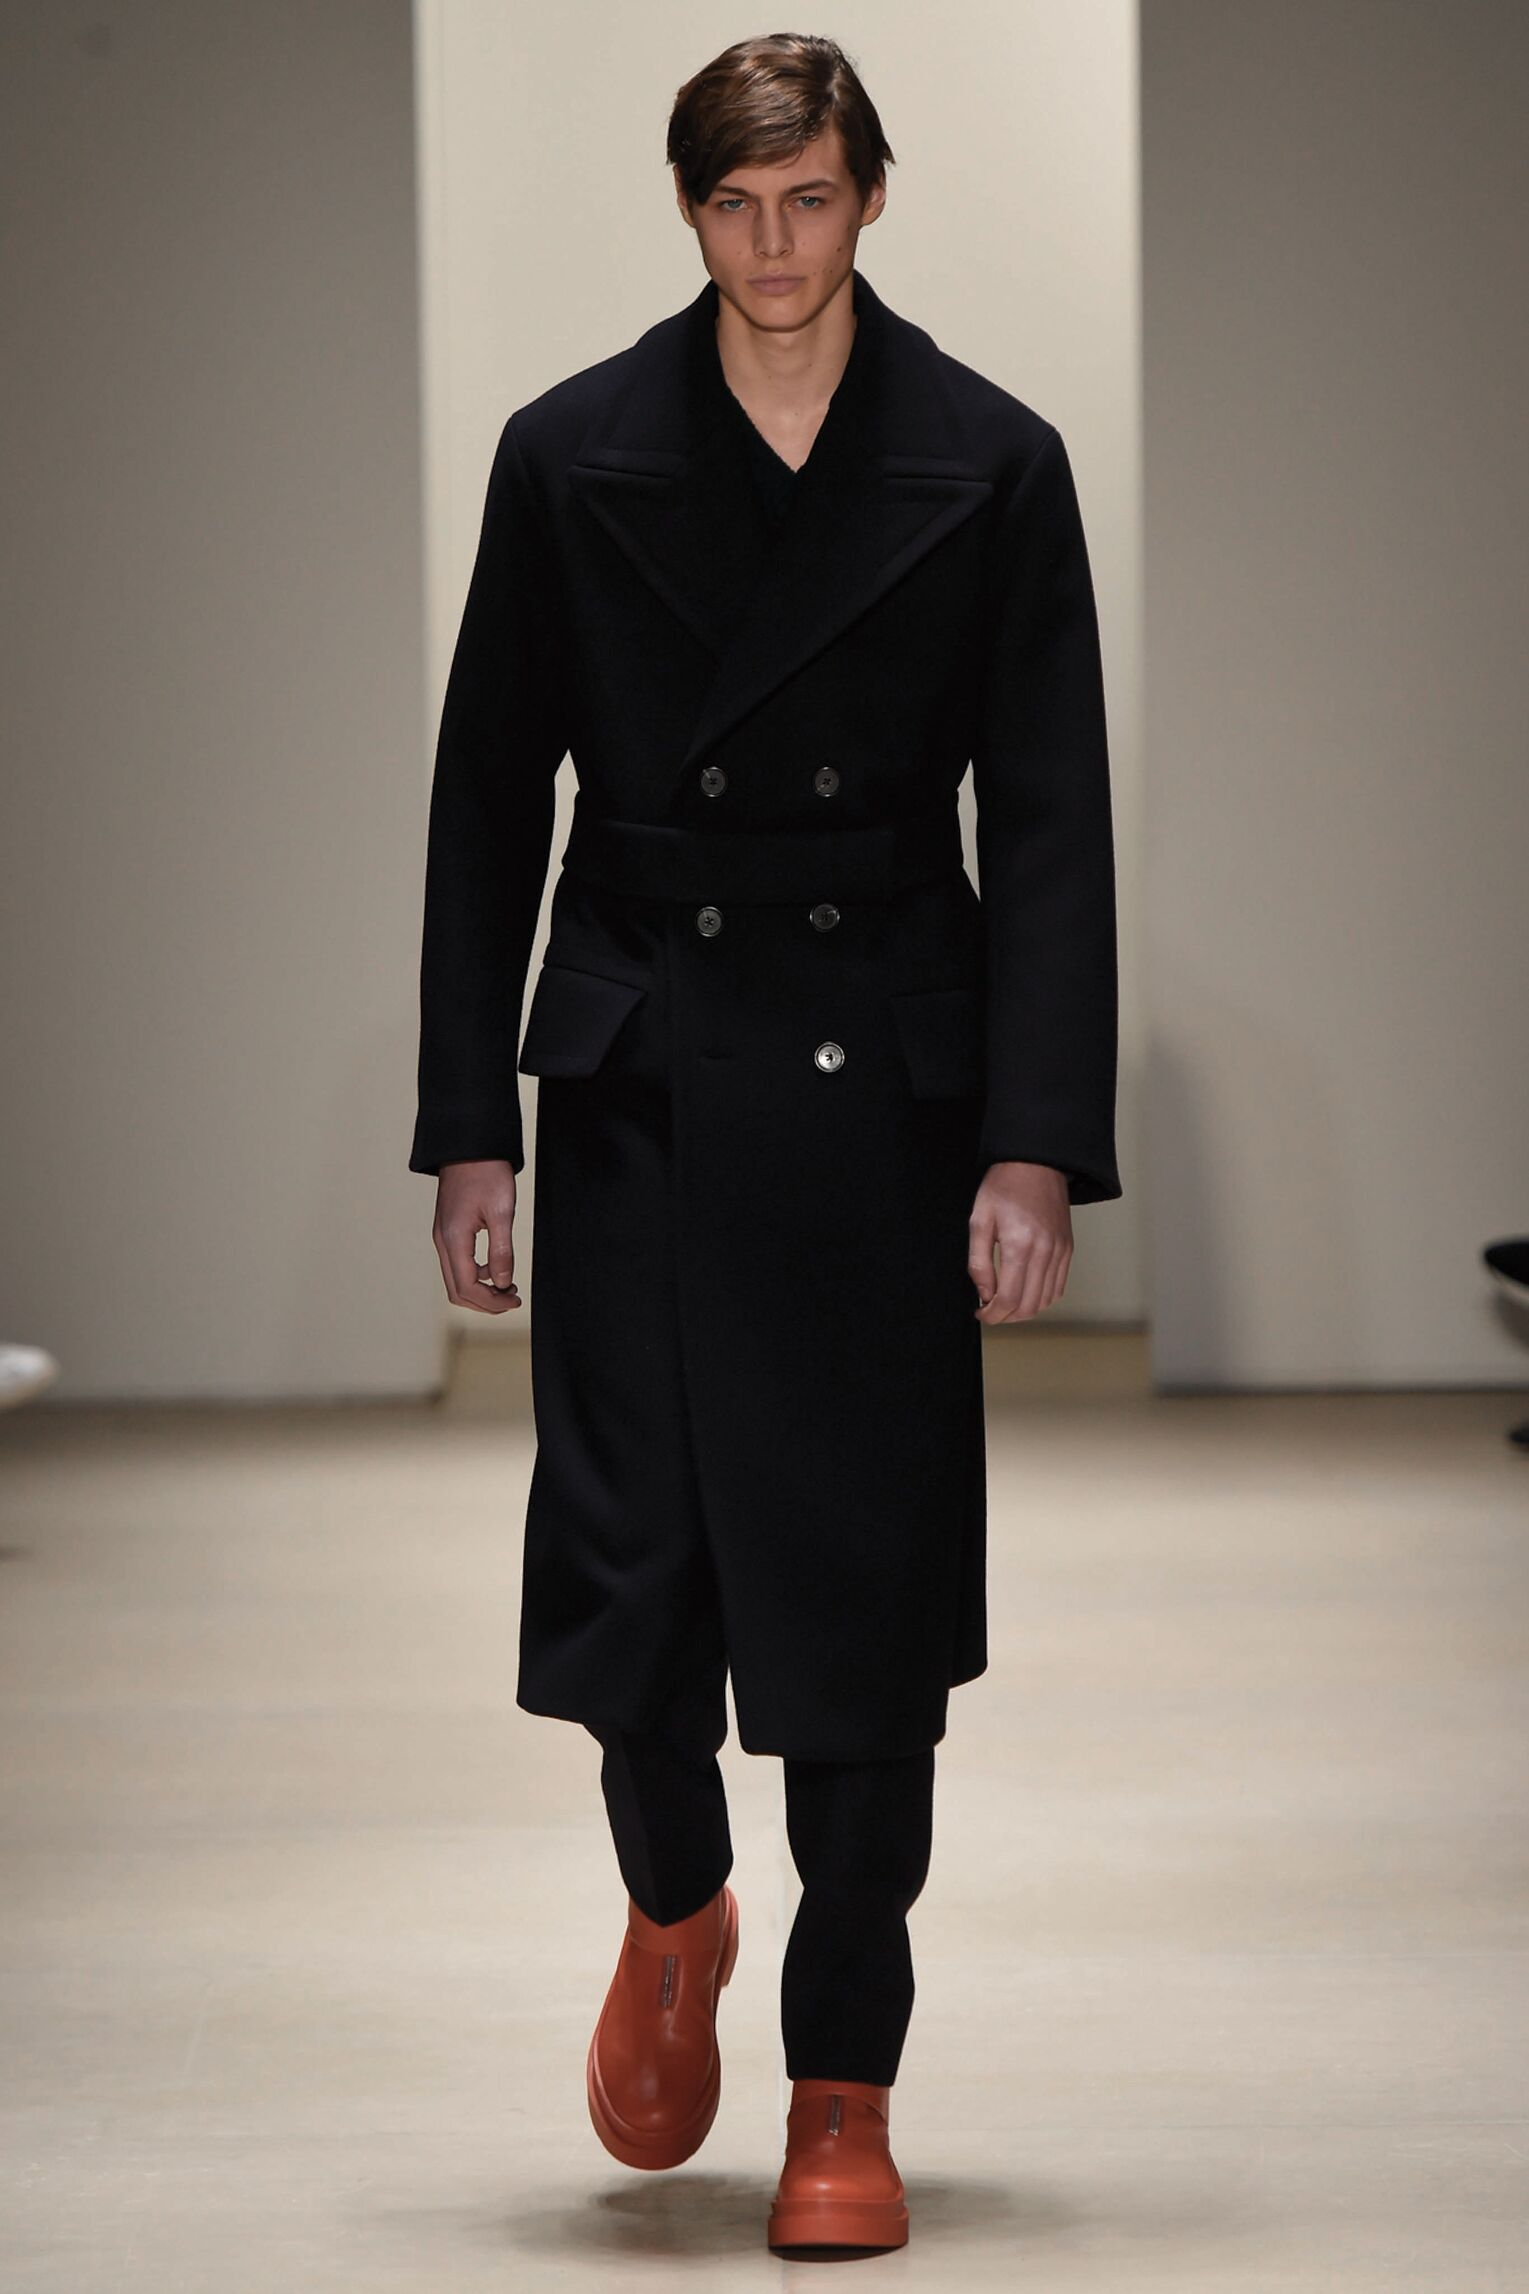 Winter 2015 Fashion Show Jil Sander